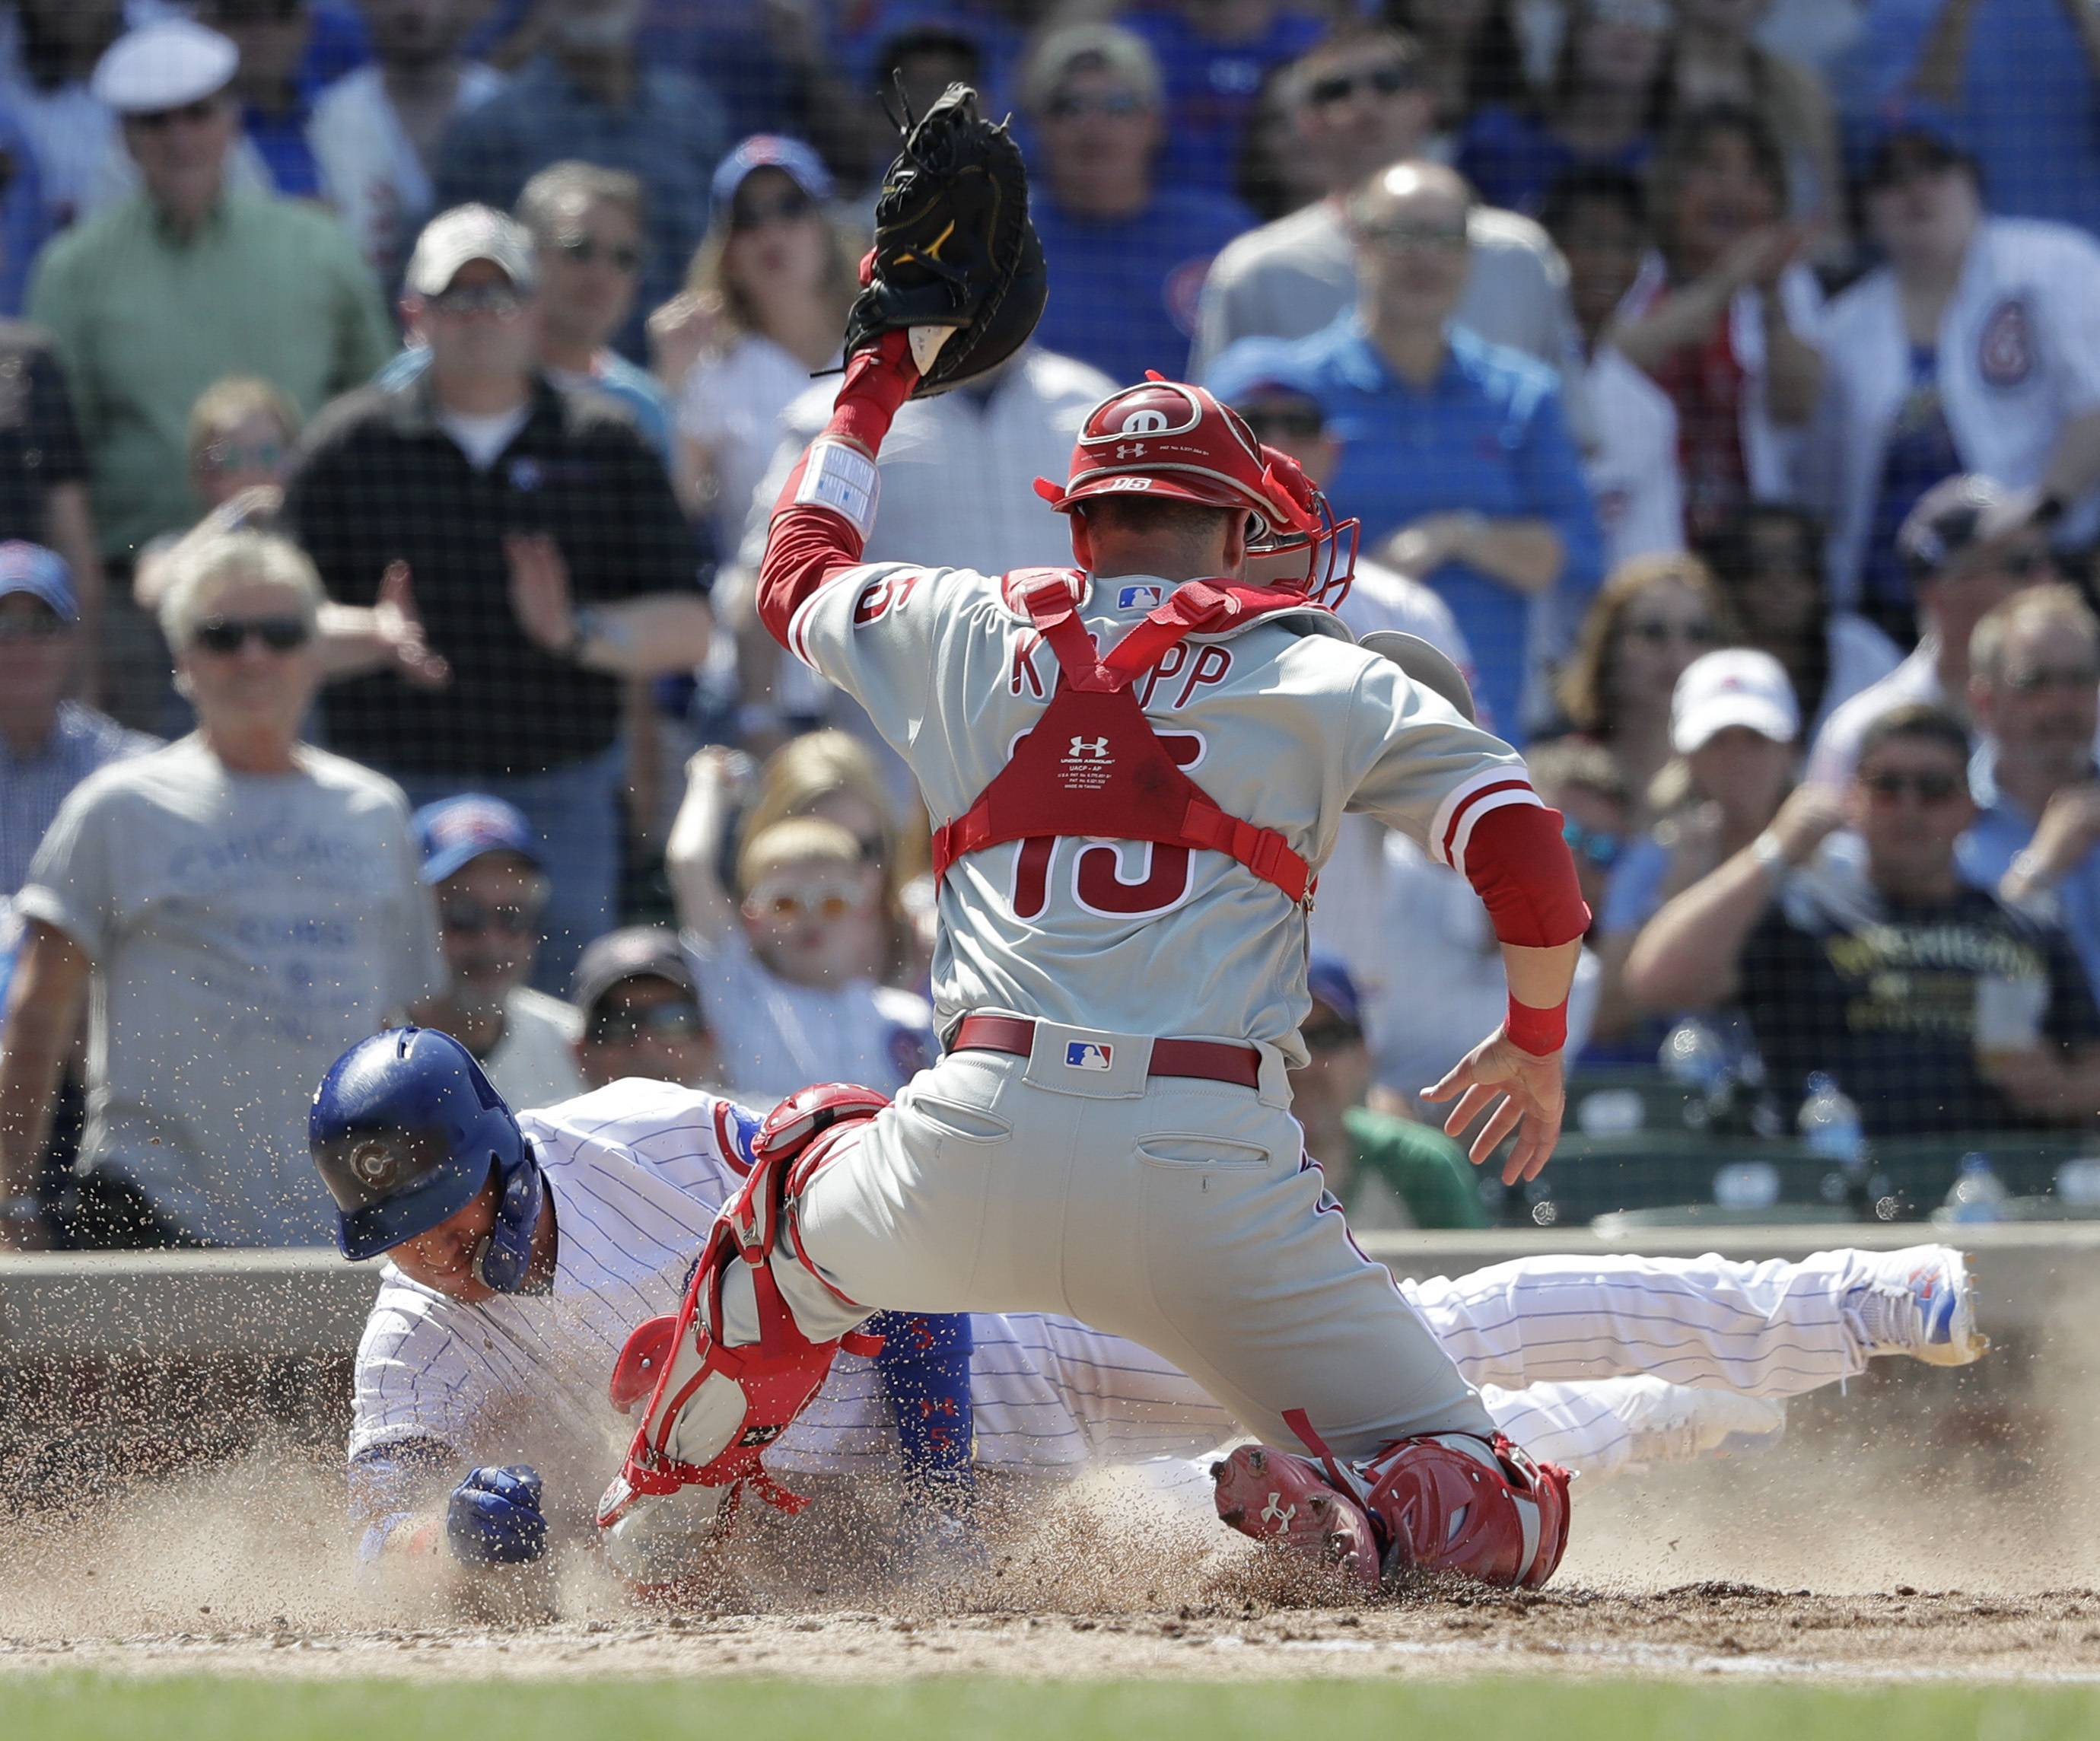 Philadelphia Phillies catcher Andrew Knapp, right, blocks home plate with his left foot and tags out Cubs' Albert Almora Jr. off a sacrifice fly by Anthony Rizzo during the fifth inning on Thursday at Wrigley Field. The play was overturned by video review with Knapp called for catcher interference.